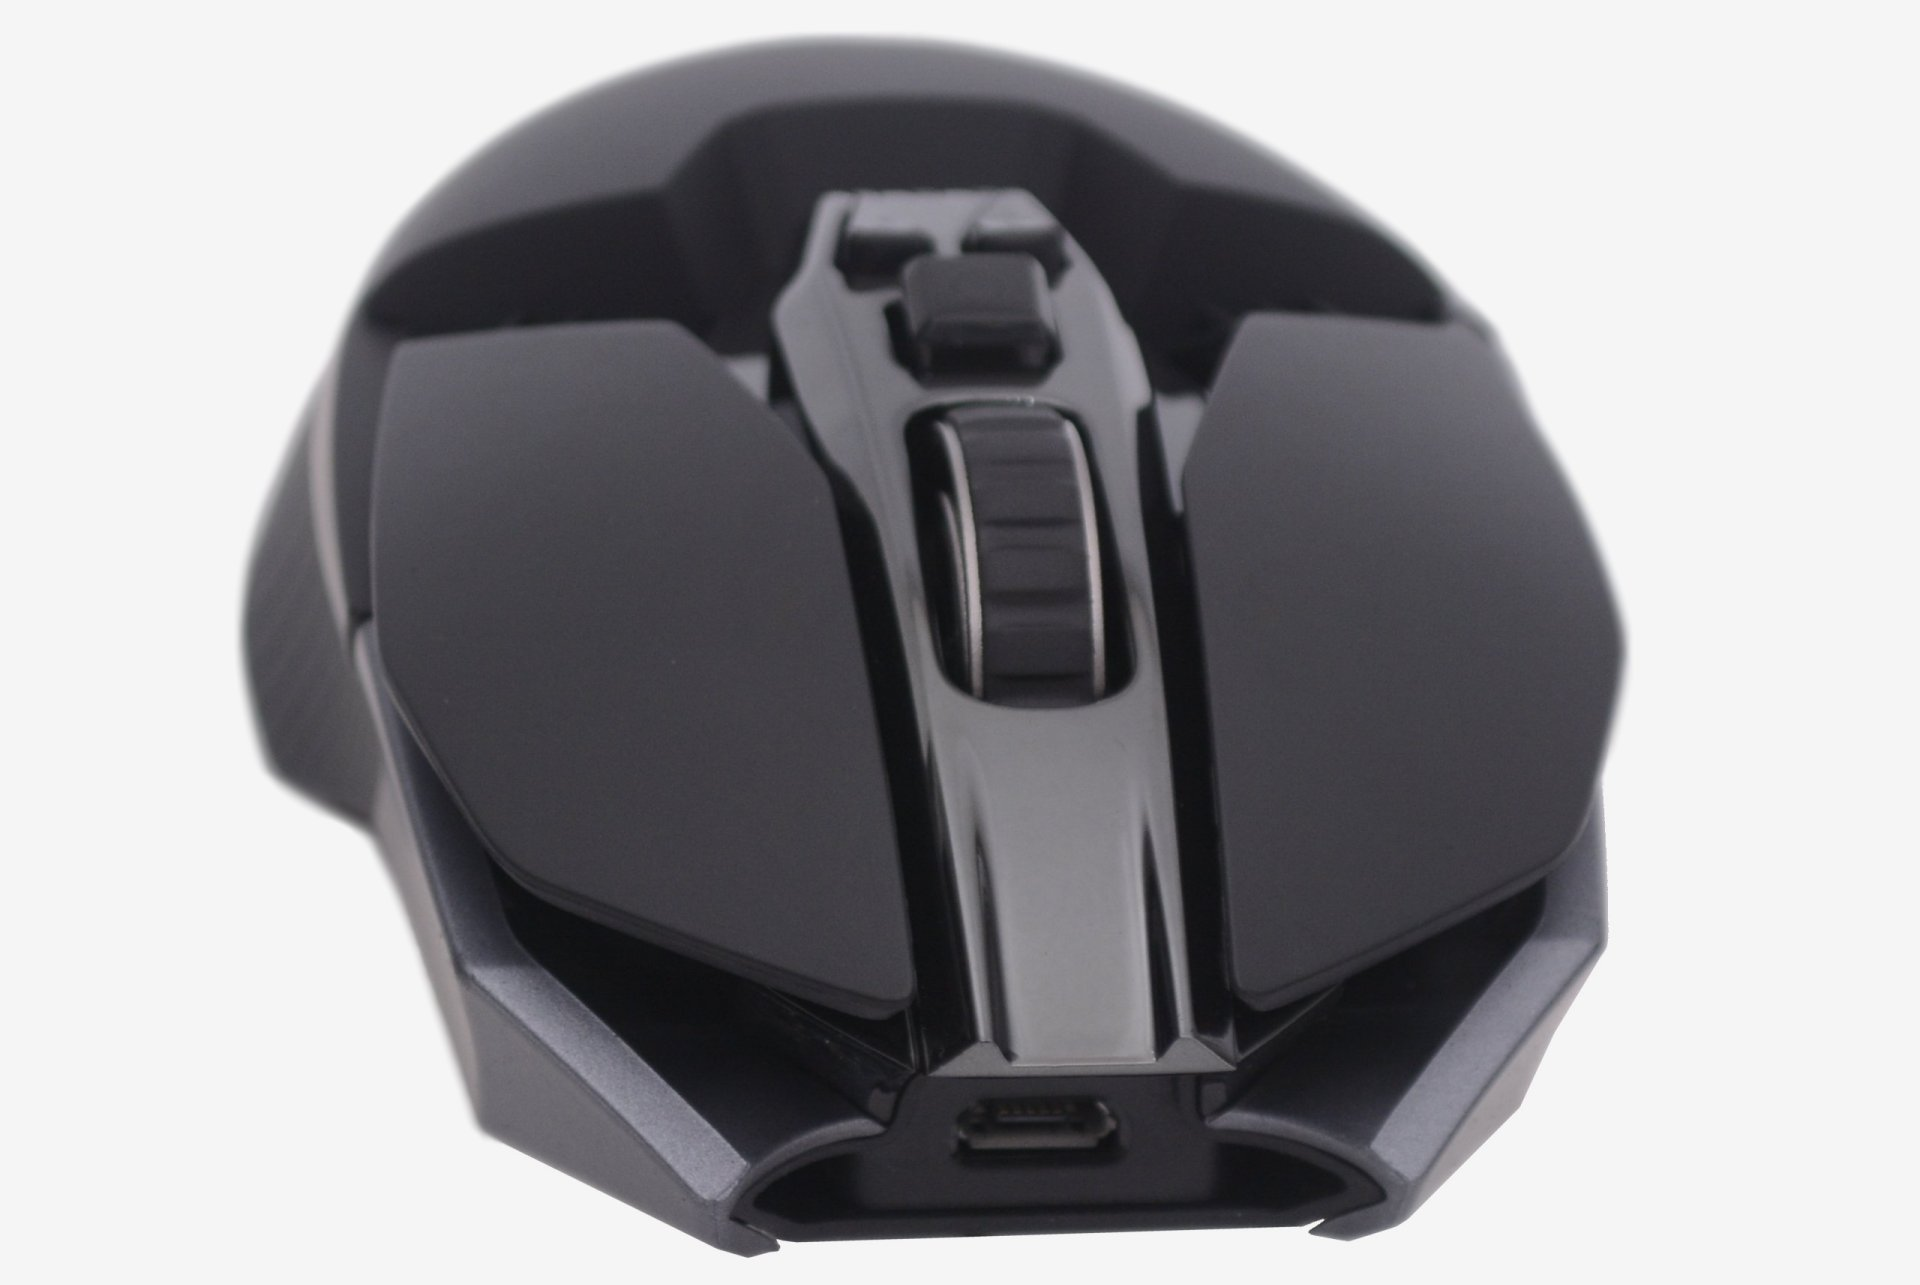 Logitech G900 Chaos Spectrum Wireless Gaming Mouse Review Photo Download Full Resolution Image Here